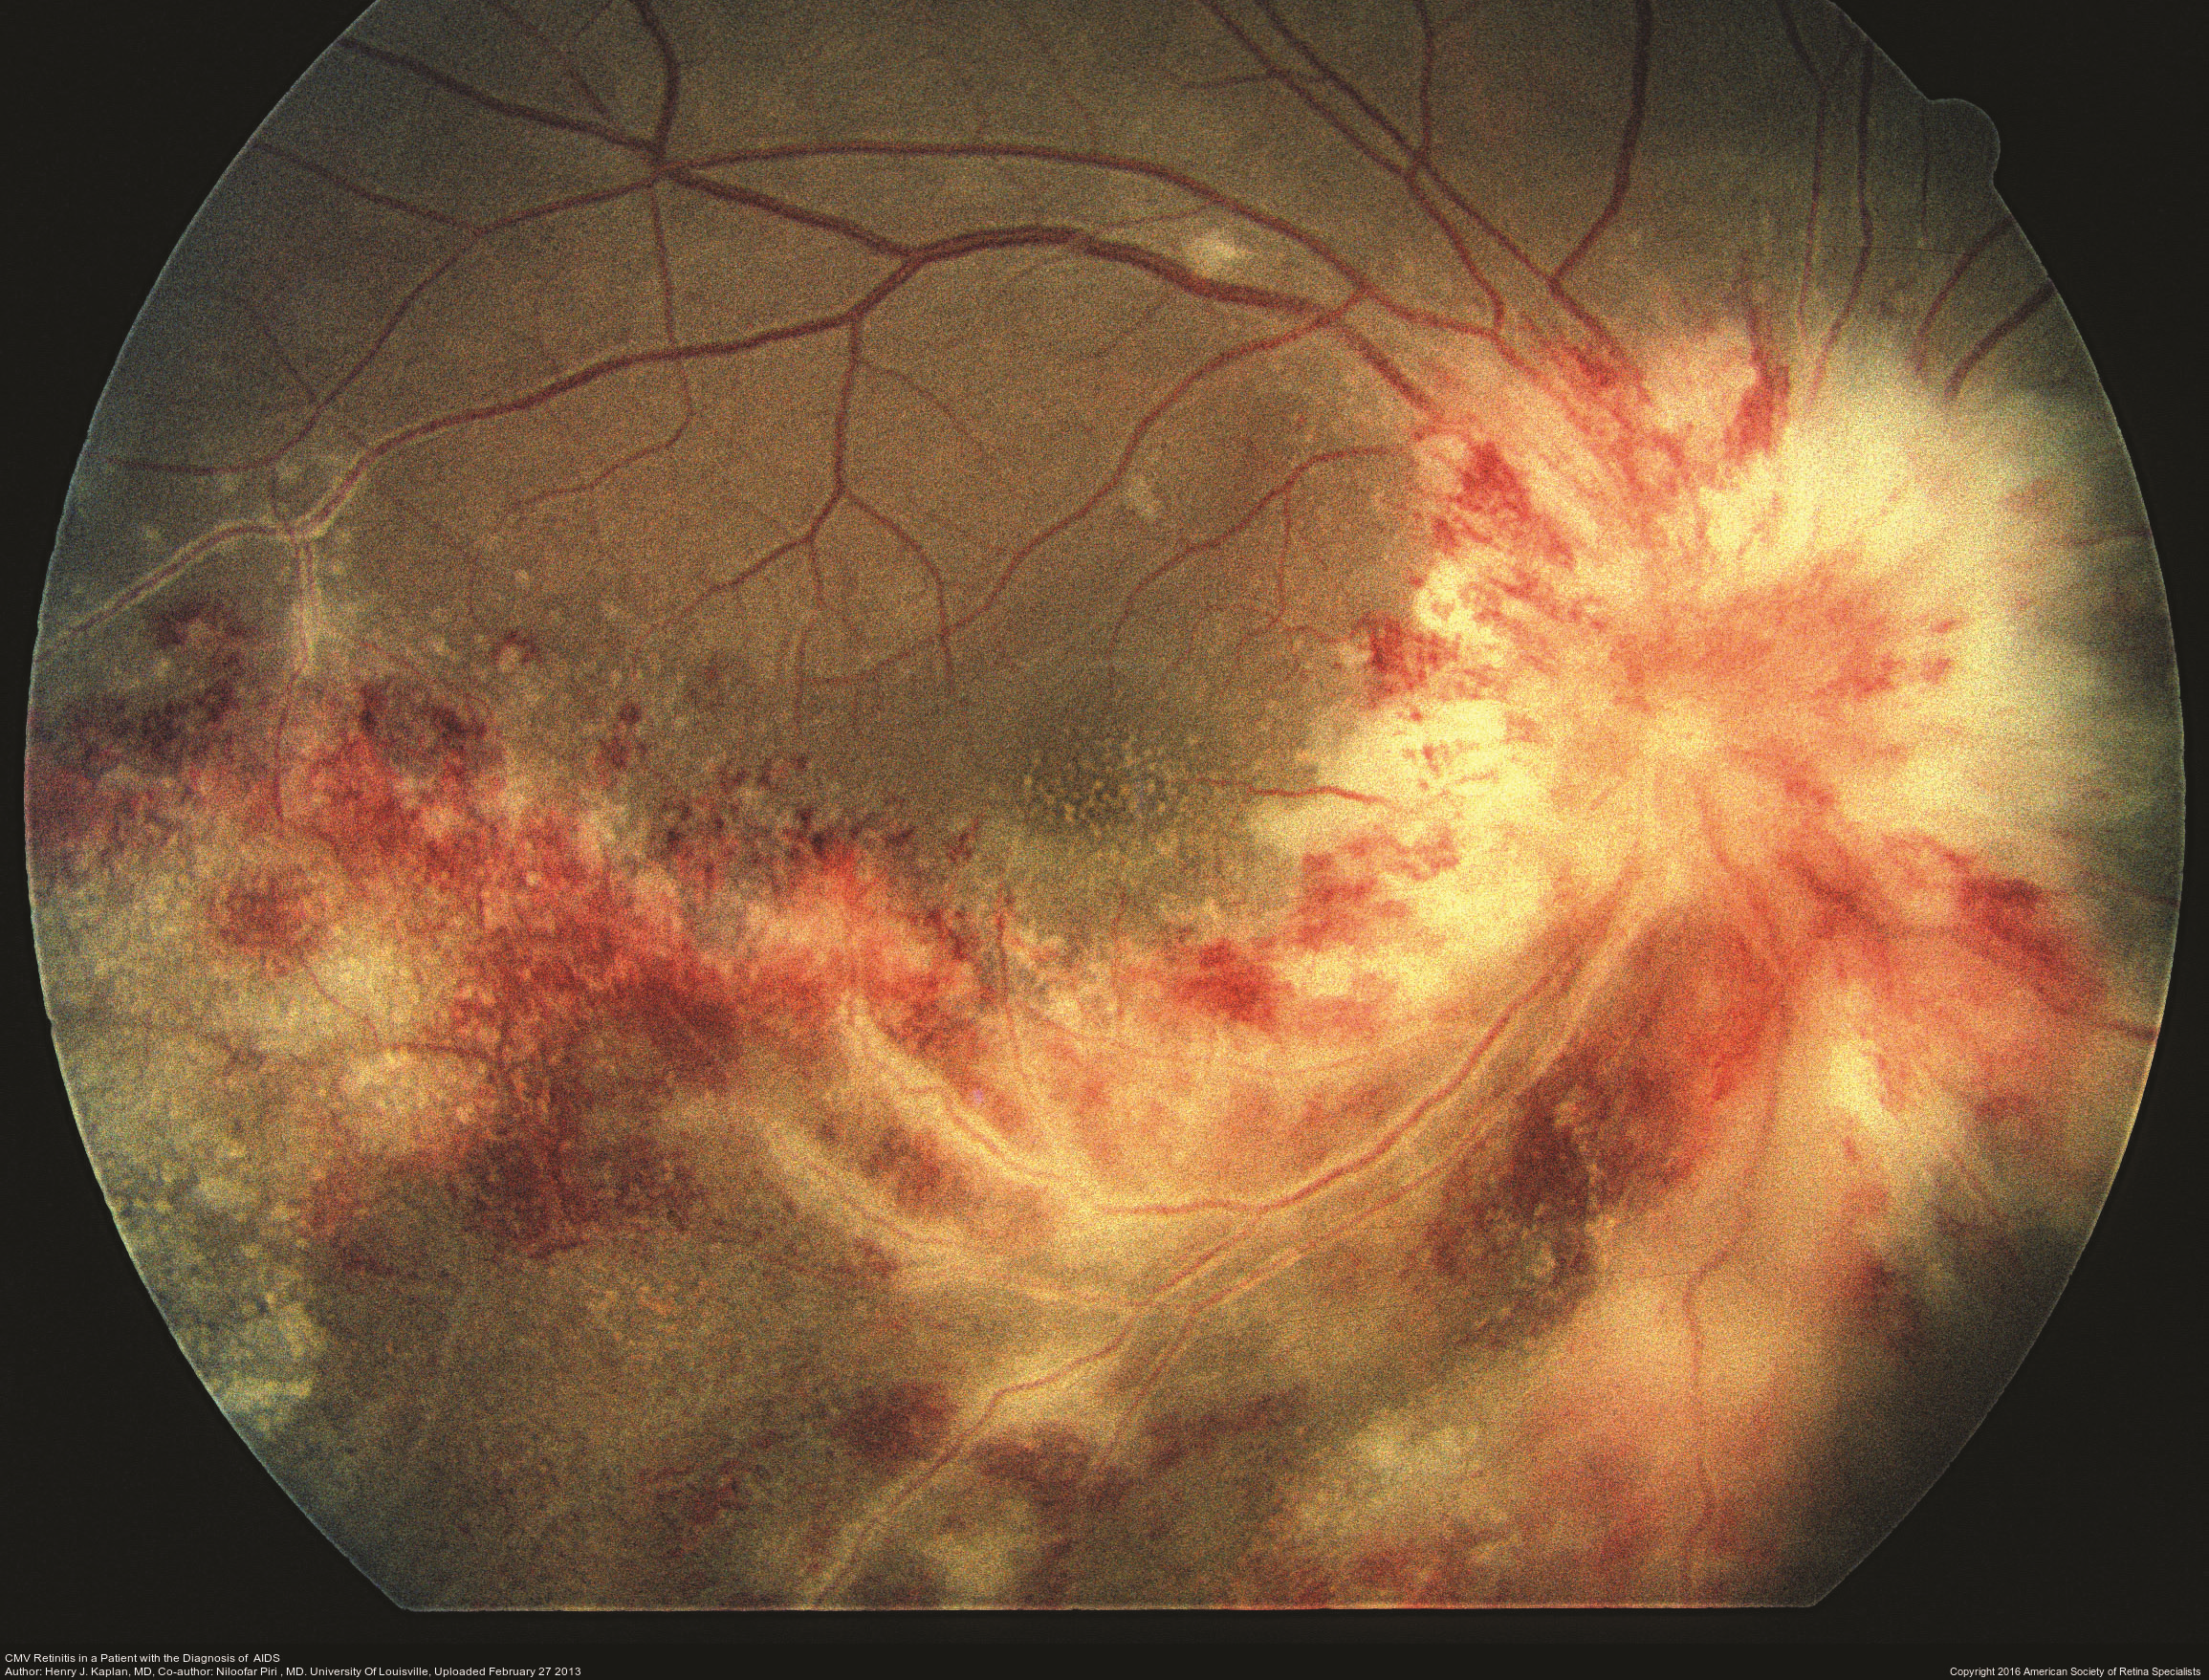 Infectious Retinitis - The American Society of Retina